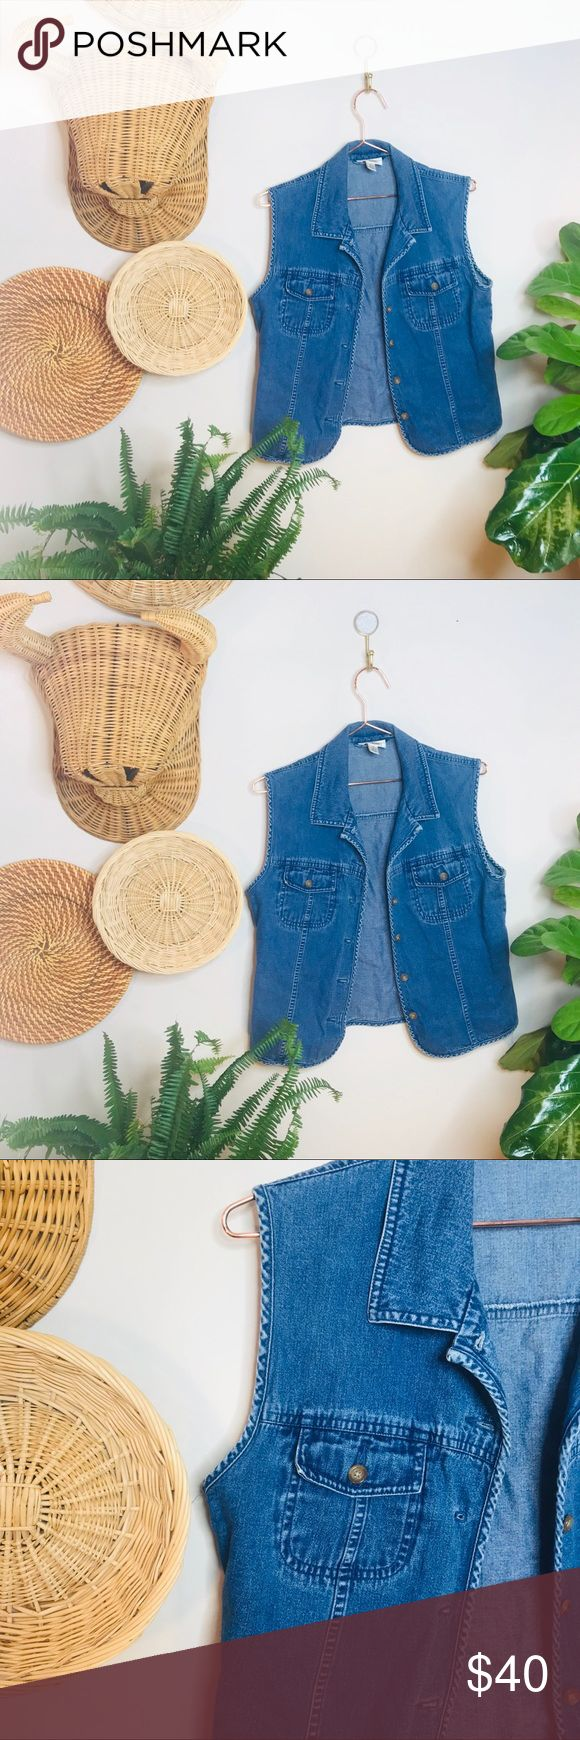 vtg vsco 90s Denim Button Up vest Vintage Retro 90's Light Wash Denim Jean Vest  • Tags say small but would fit a XS nicely  tags • boho, beachy...